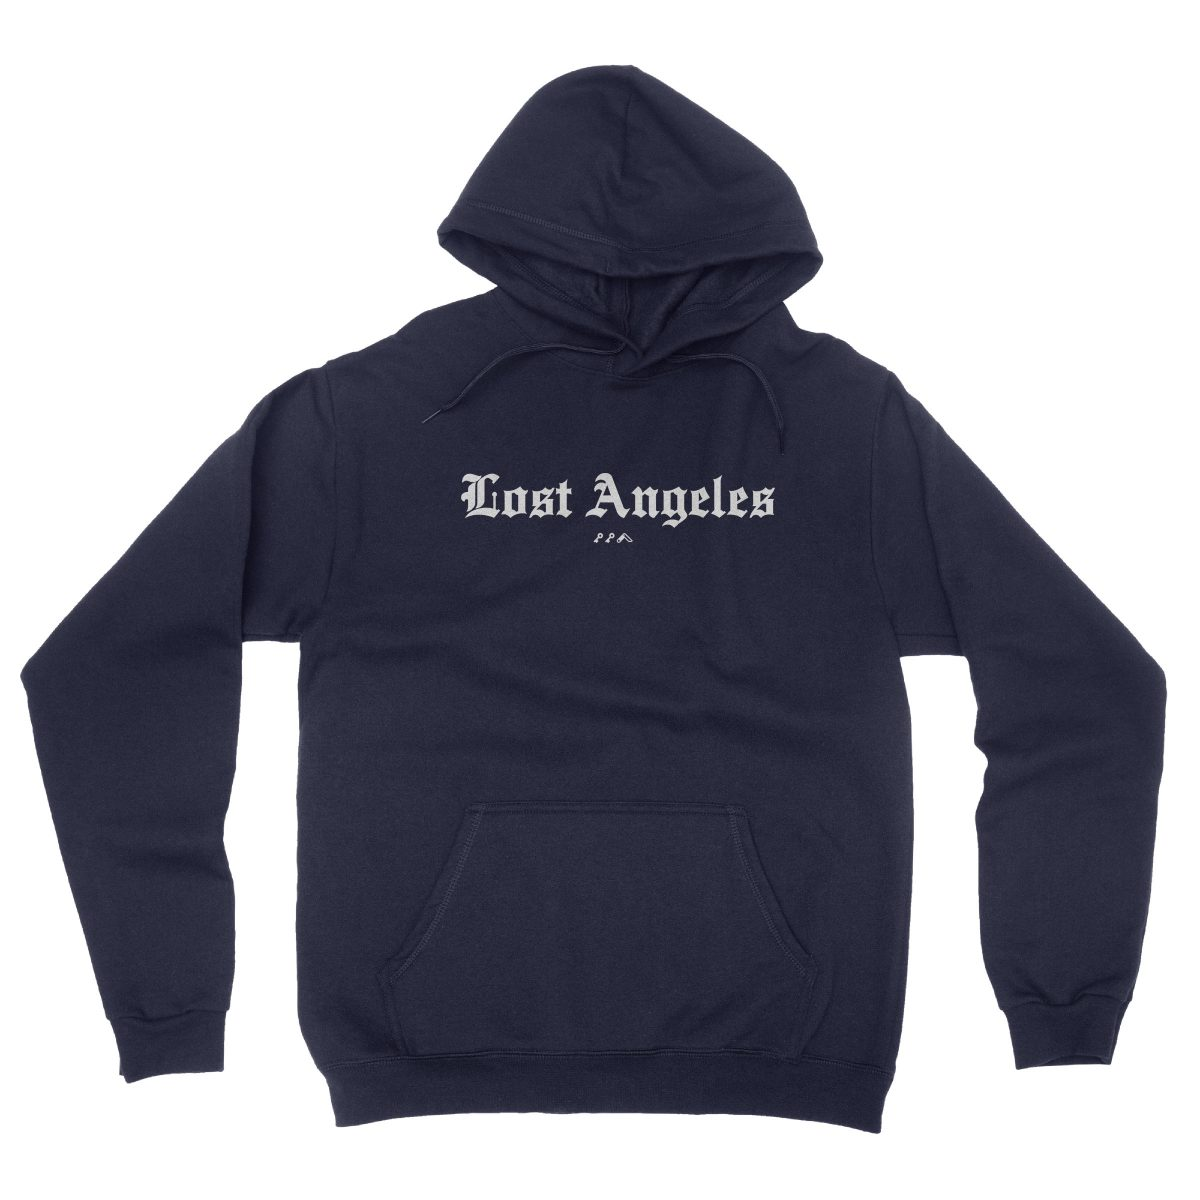 """Lost Angeles"" old english lettering soft hoodies in navy by KIKICUTT"